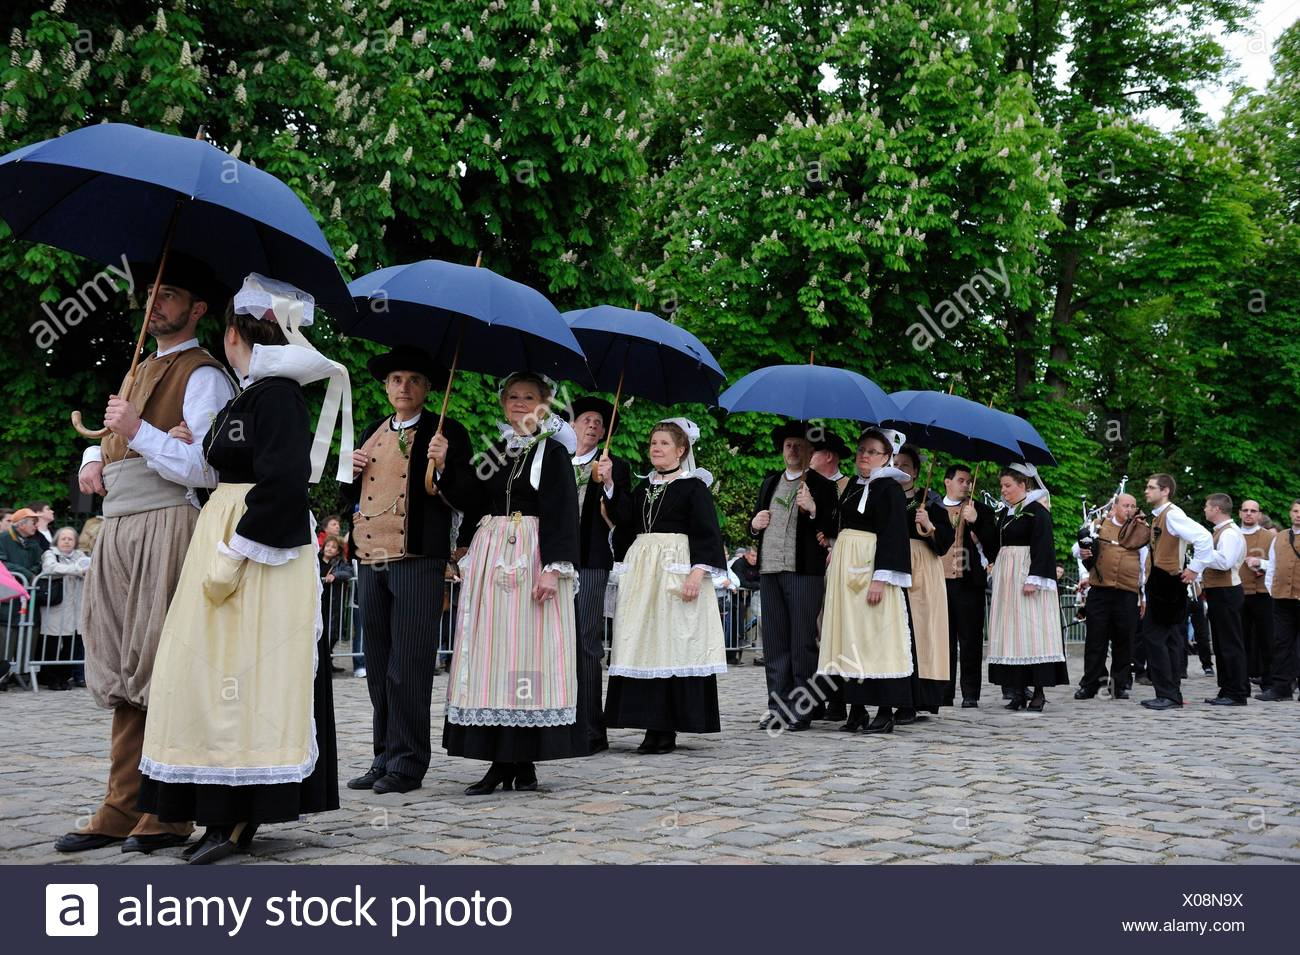 ´´Fete du Muguet´´ (Lily of the valley festival) parade at Rambouillet, Yvelines department, Ile-de-France region, France, Europe. - Stock Image